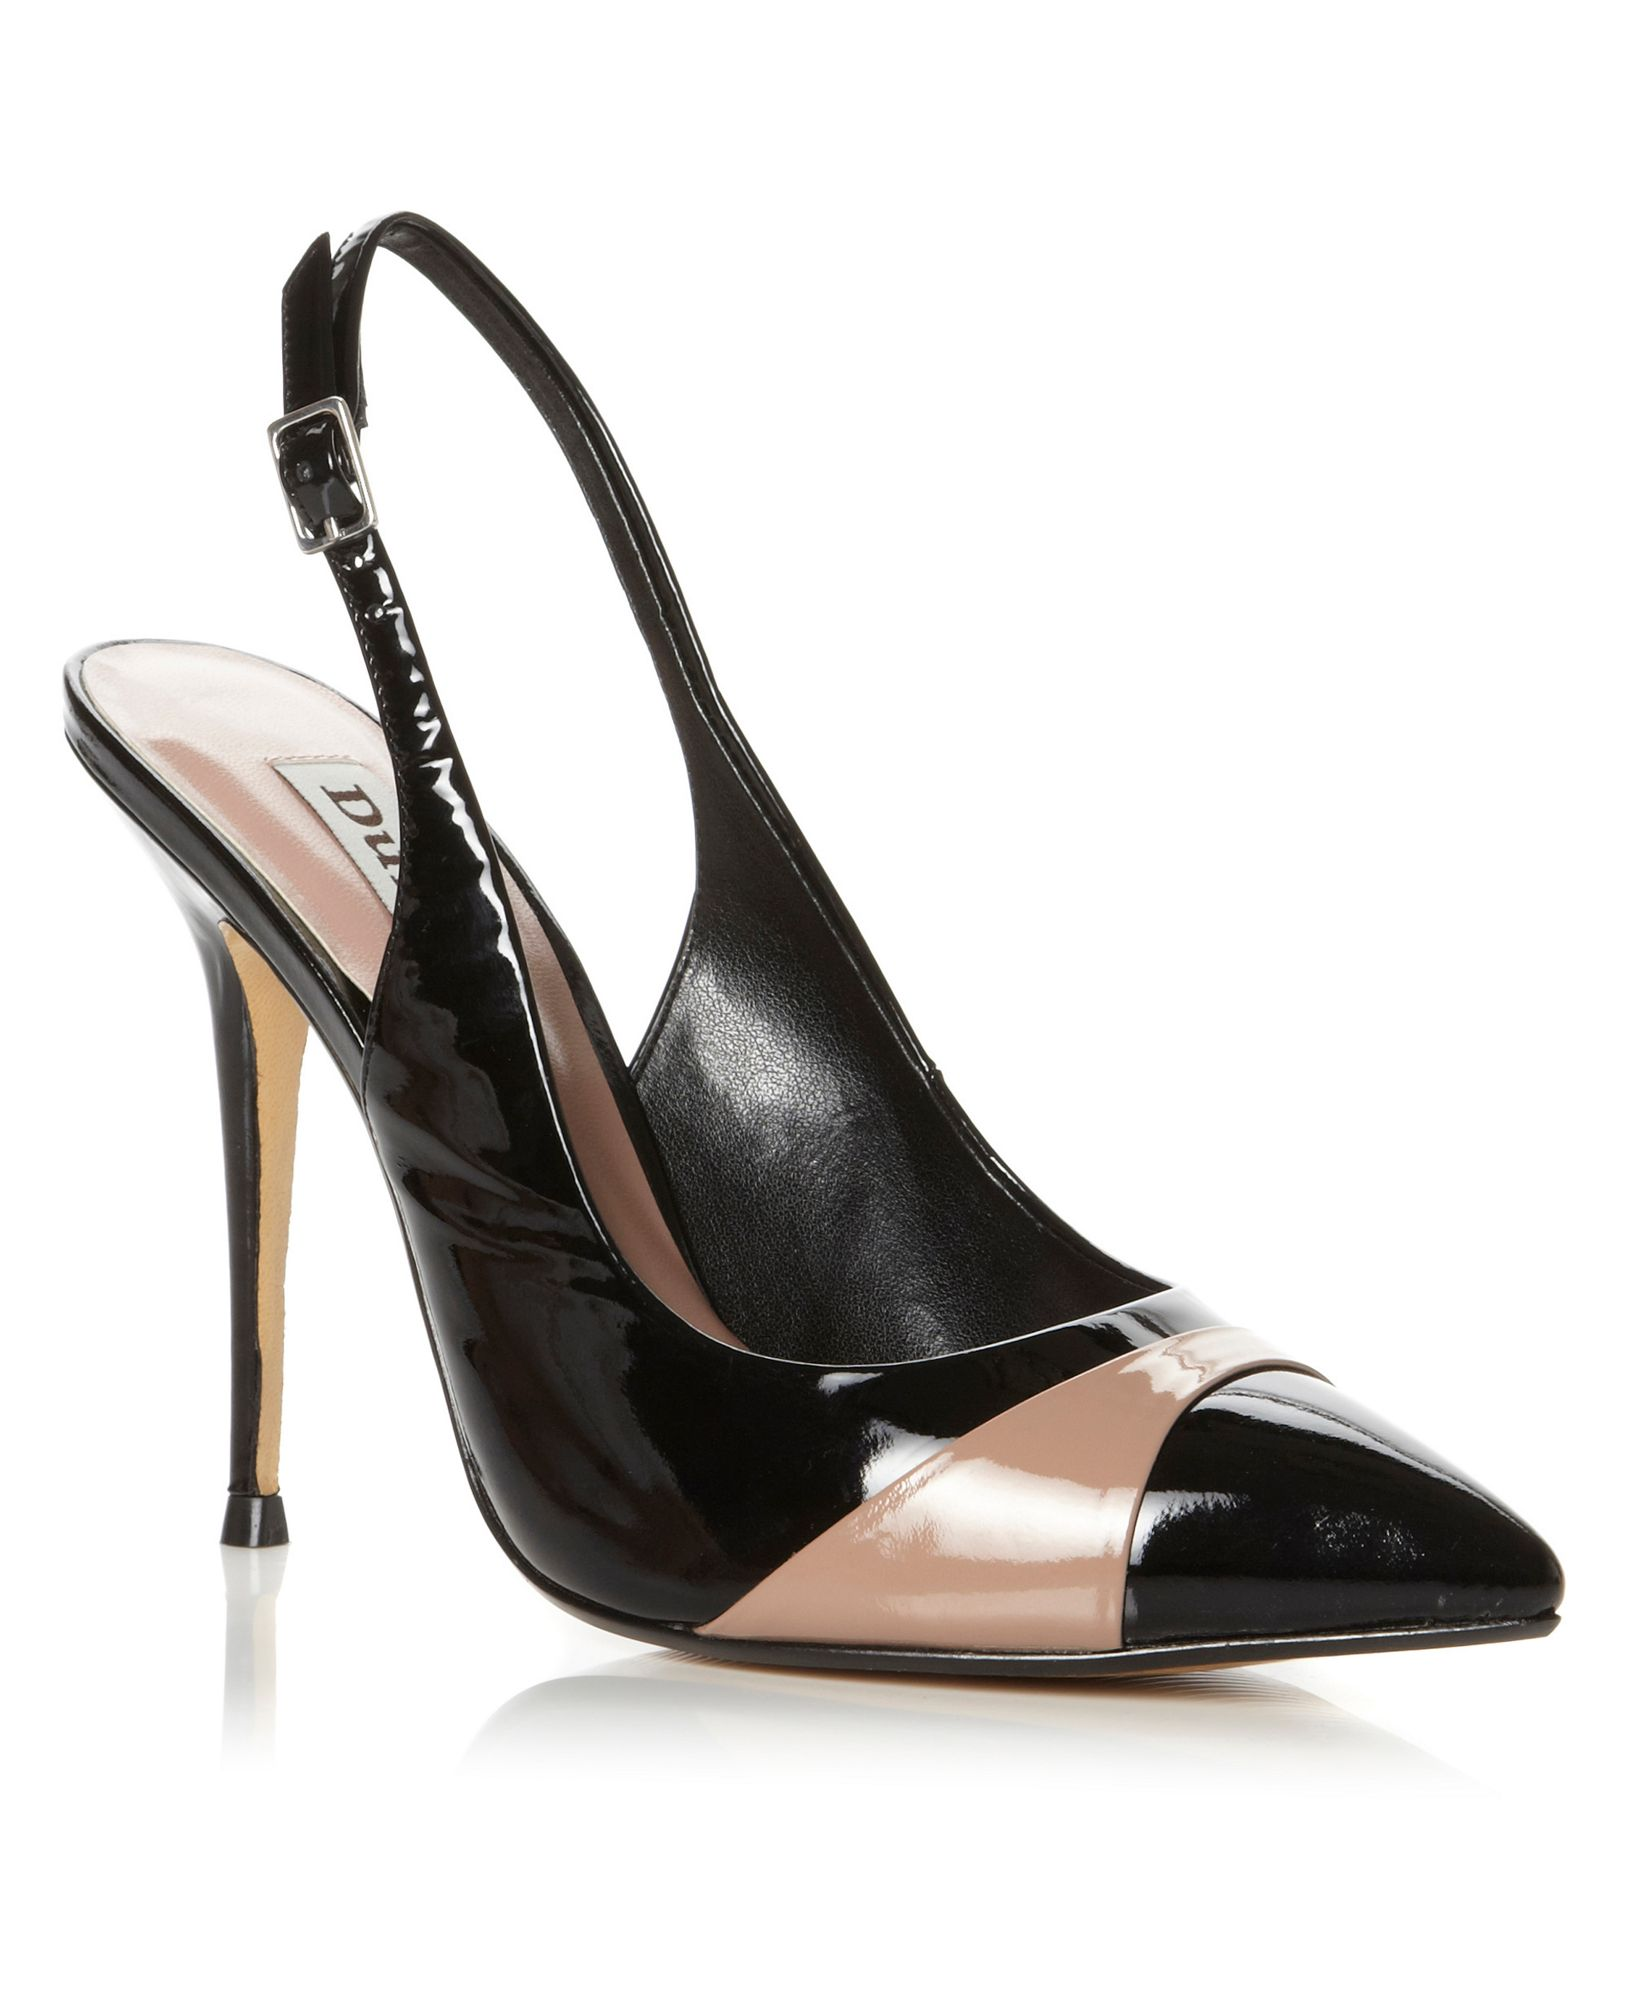 dune charford patent slingback court shoes in black lyst